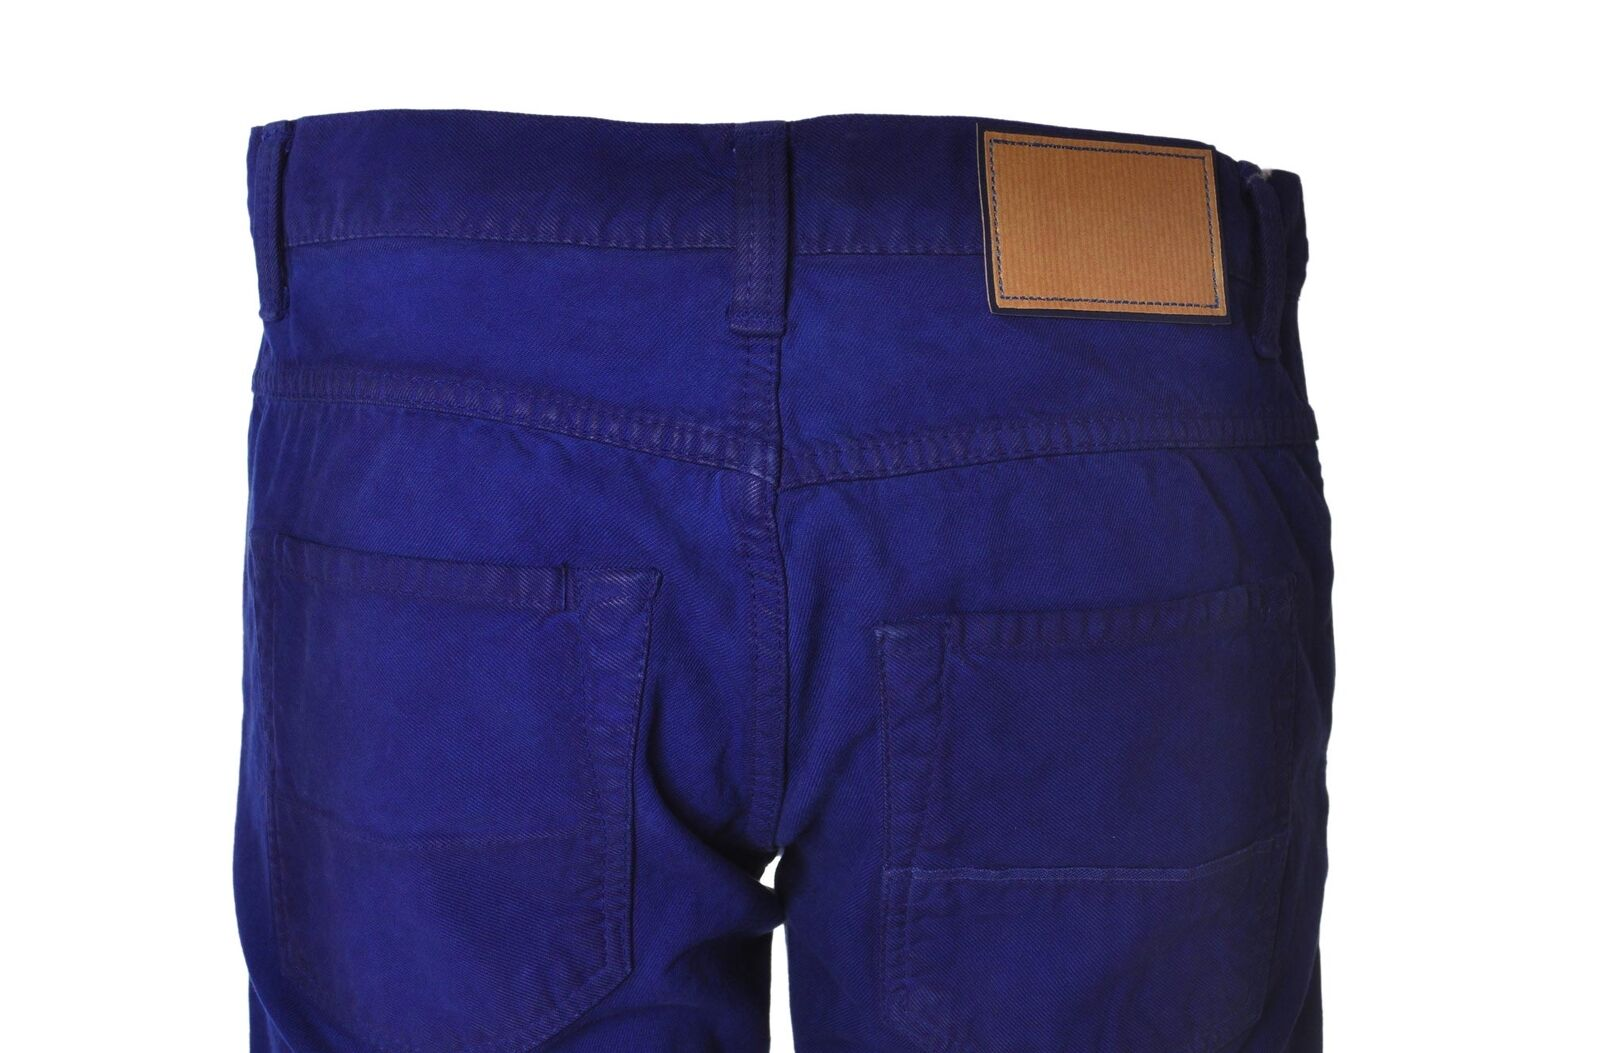 Care Label  - - -  Pantaloni - Uomo - Blu - 4502124A184527 0c2928